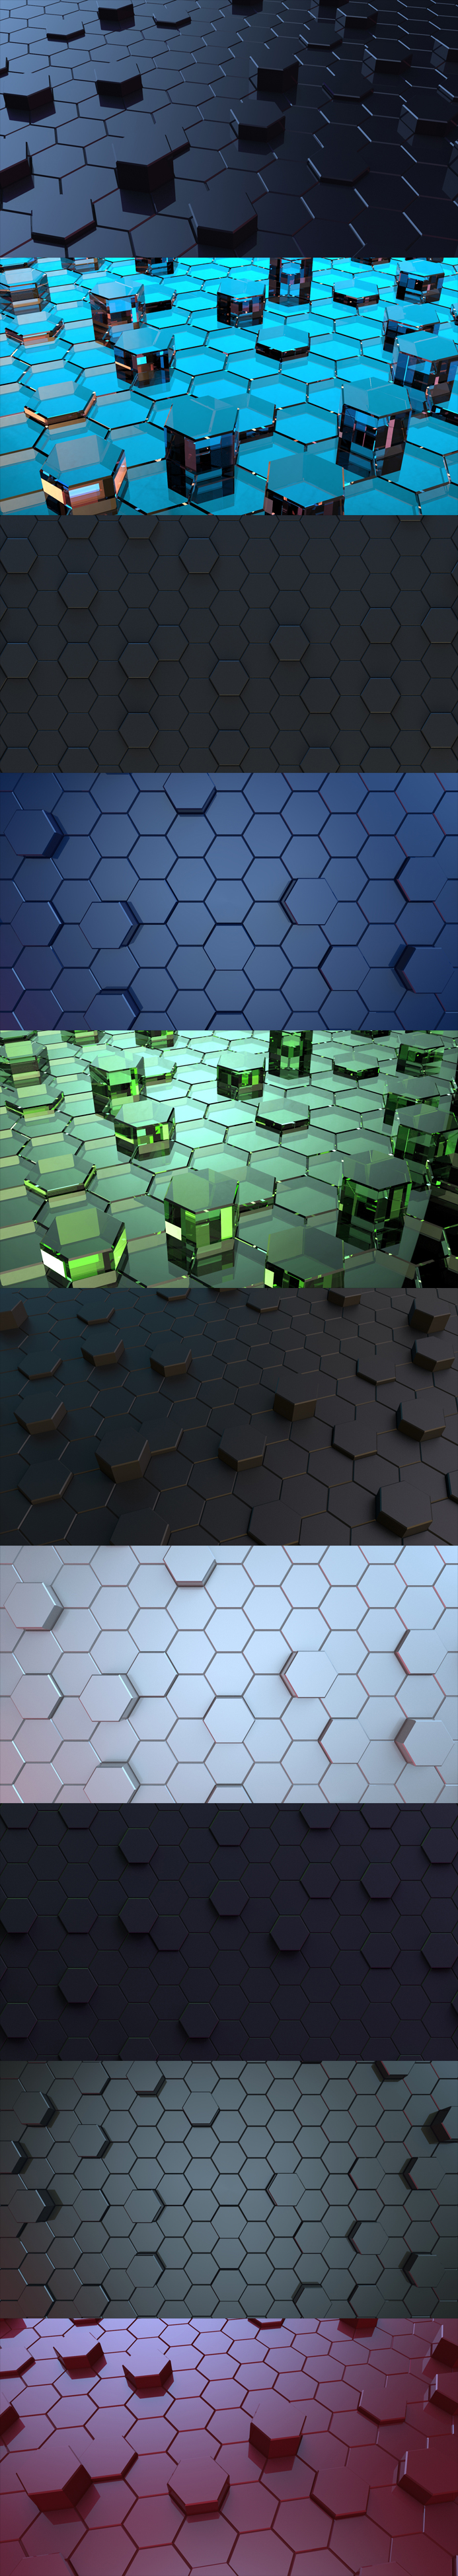 free-hexagonal-3d-backgrounds